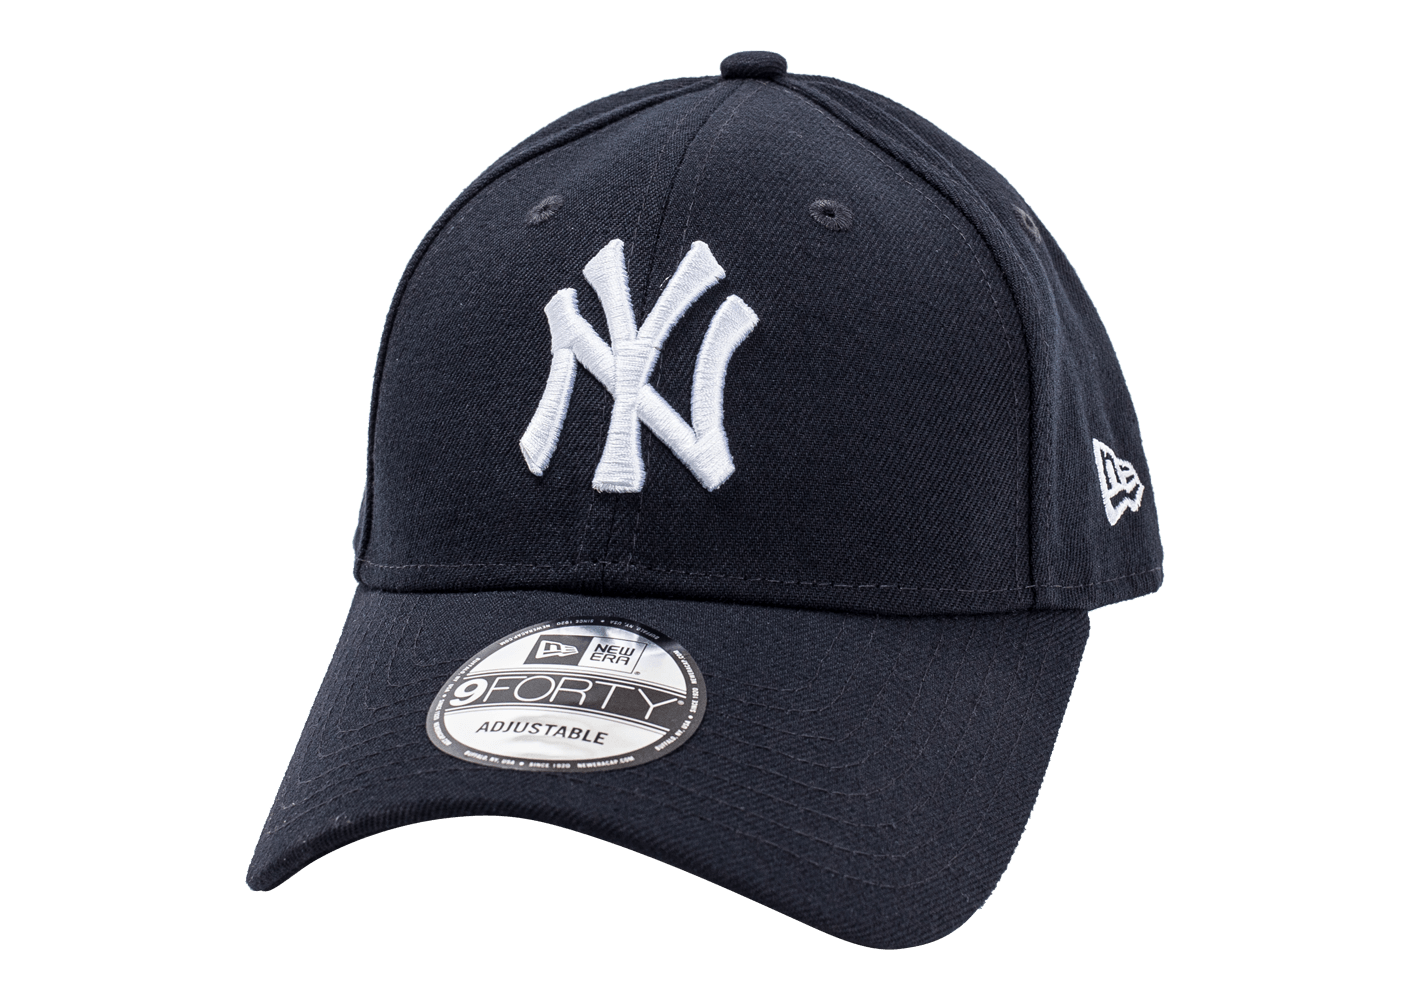 new era casquette 9forty ny the league noire black friday chausport. Black Bedroom Furniture Sets. Home Design Ideas